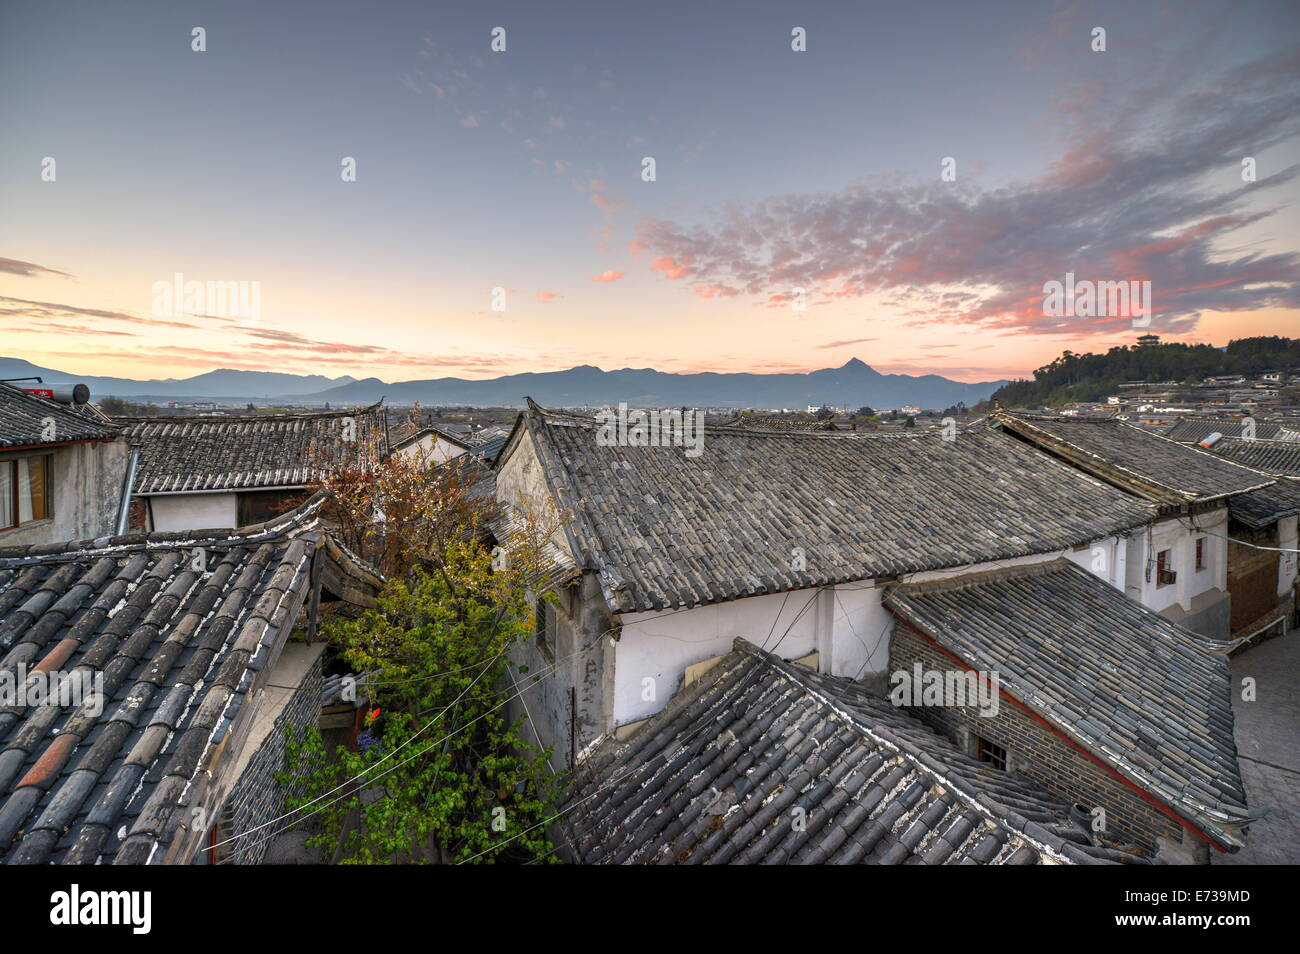 The sun is about to rise over the roofs and mountains of Lijiang Old Town, UNESCO Site, Lijiang, Yunnan, China, - Stock Image